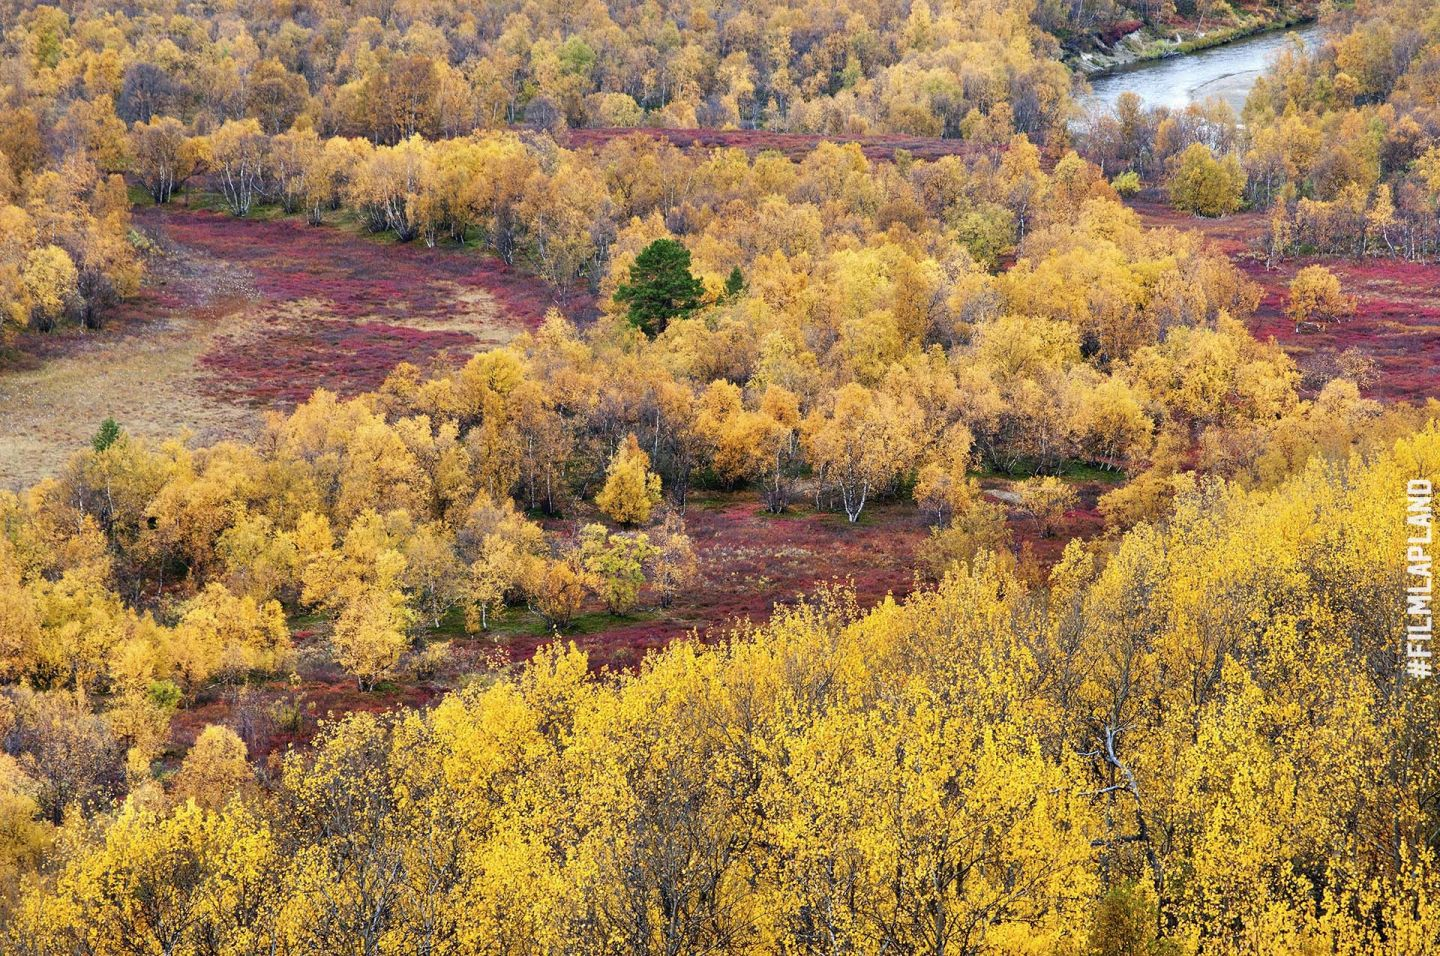 forests of Utsjoki, Finland in autumn